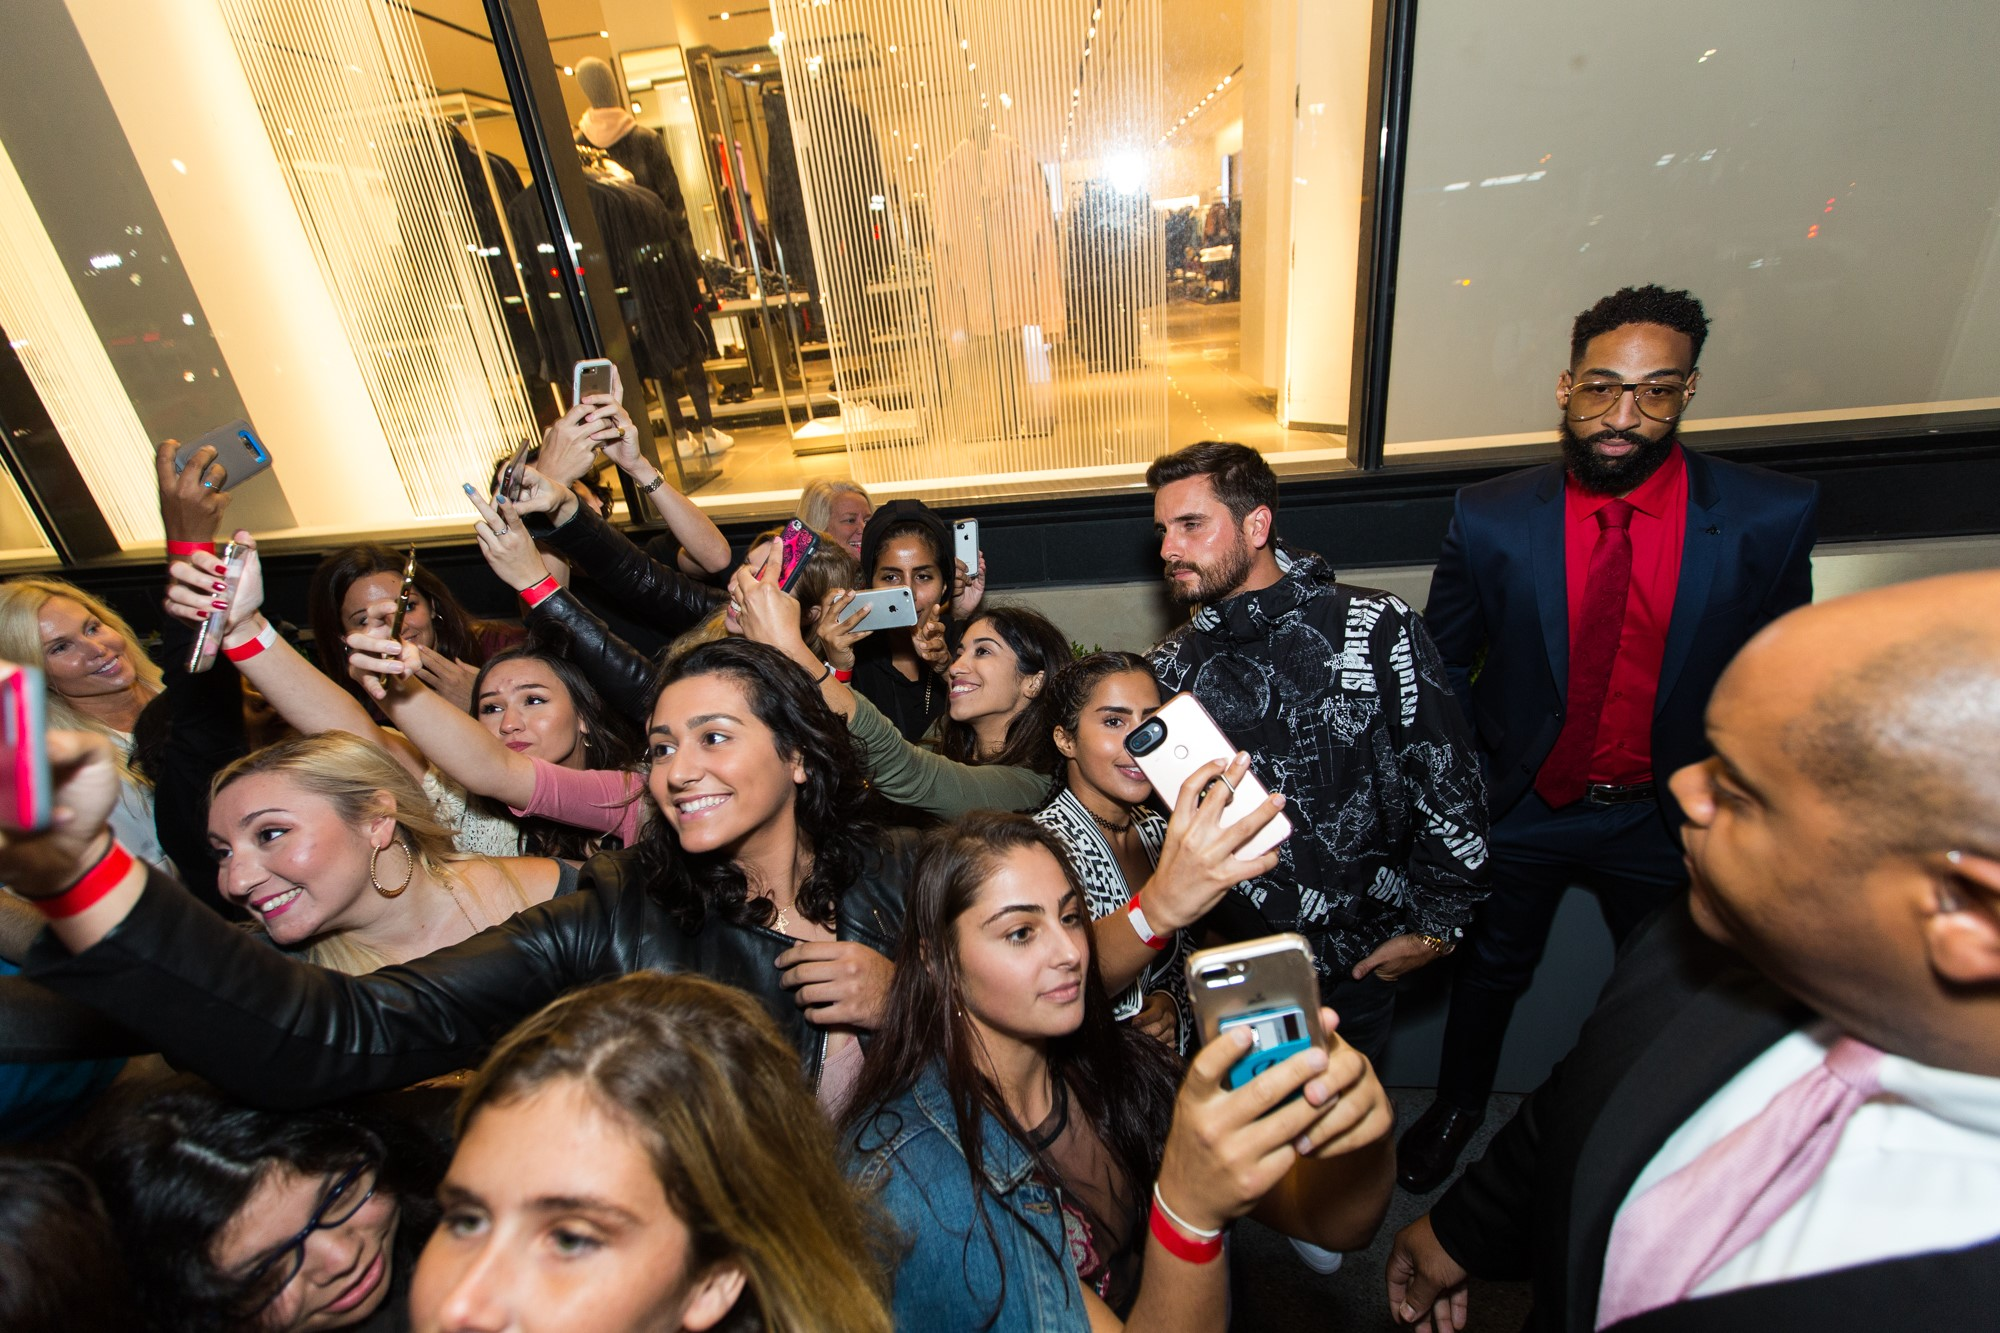 Disick posed on the red carpet just outside the store and took photos with excited fans before heading inside. (Image: John Robinson)